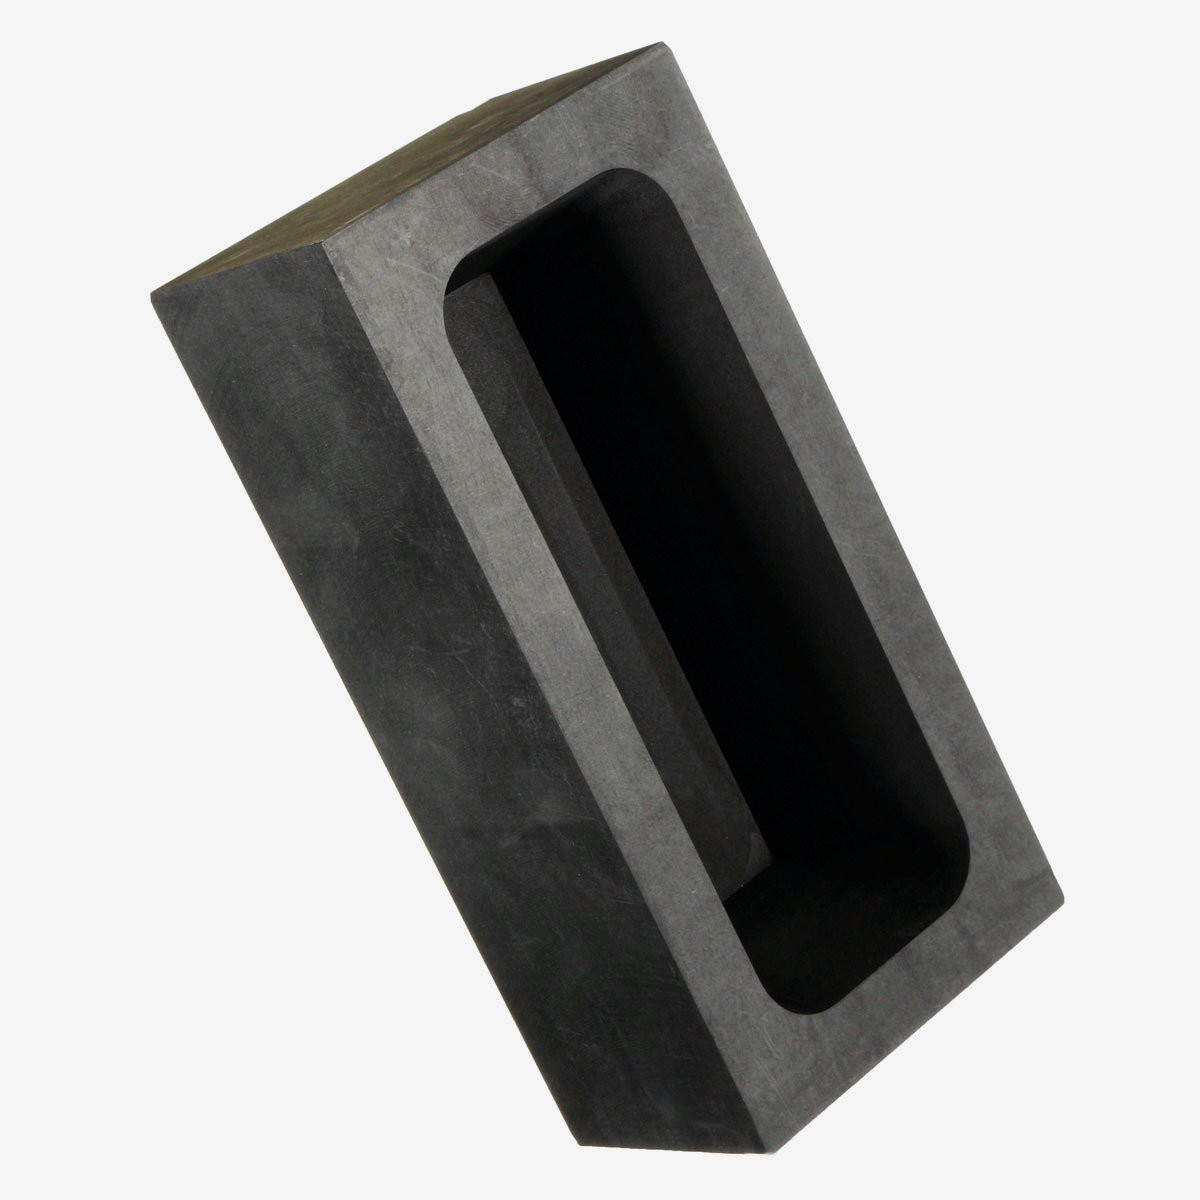 US $14 36 47% OFF|85oz Large Graphite Casting Ingot Mold for Gold Silver  Copper Melting Casting Refining Scrap Bar Crucible Tool Parts-in Tool Parts